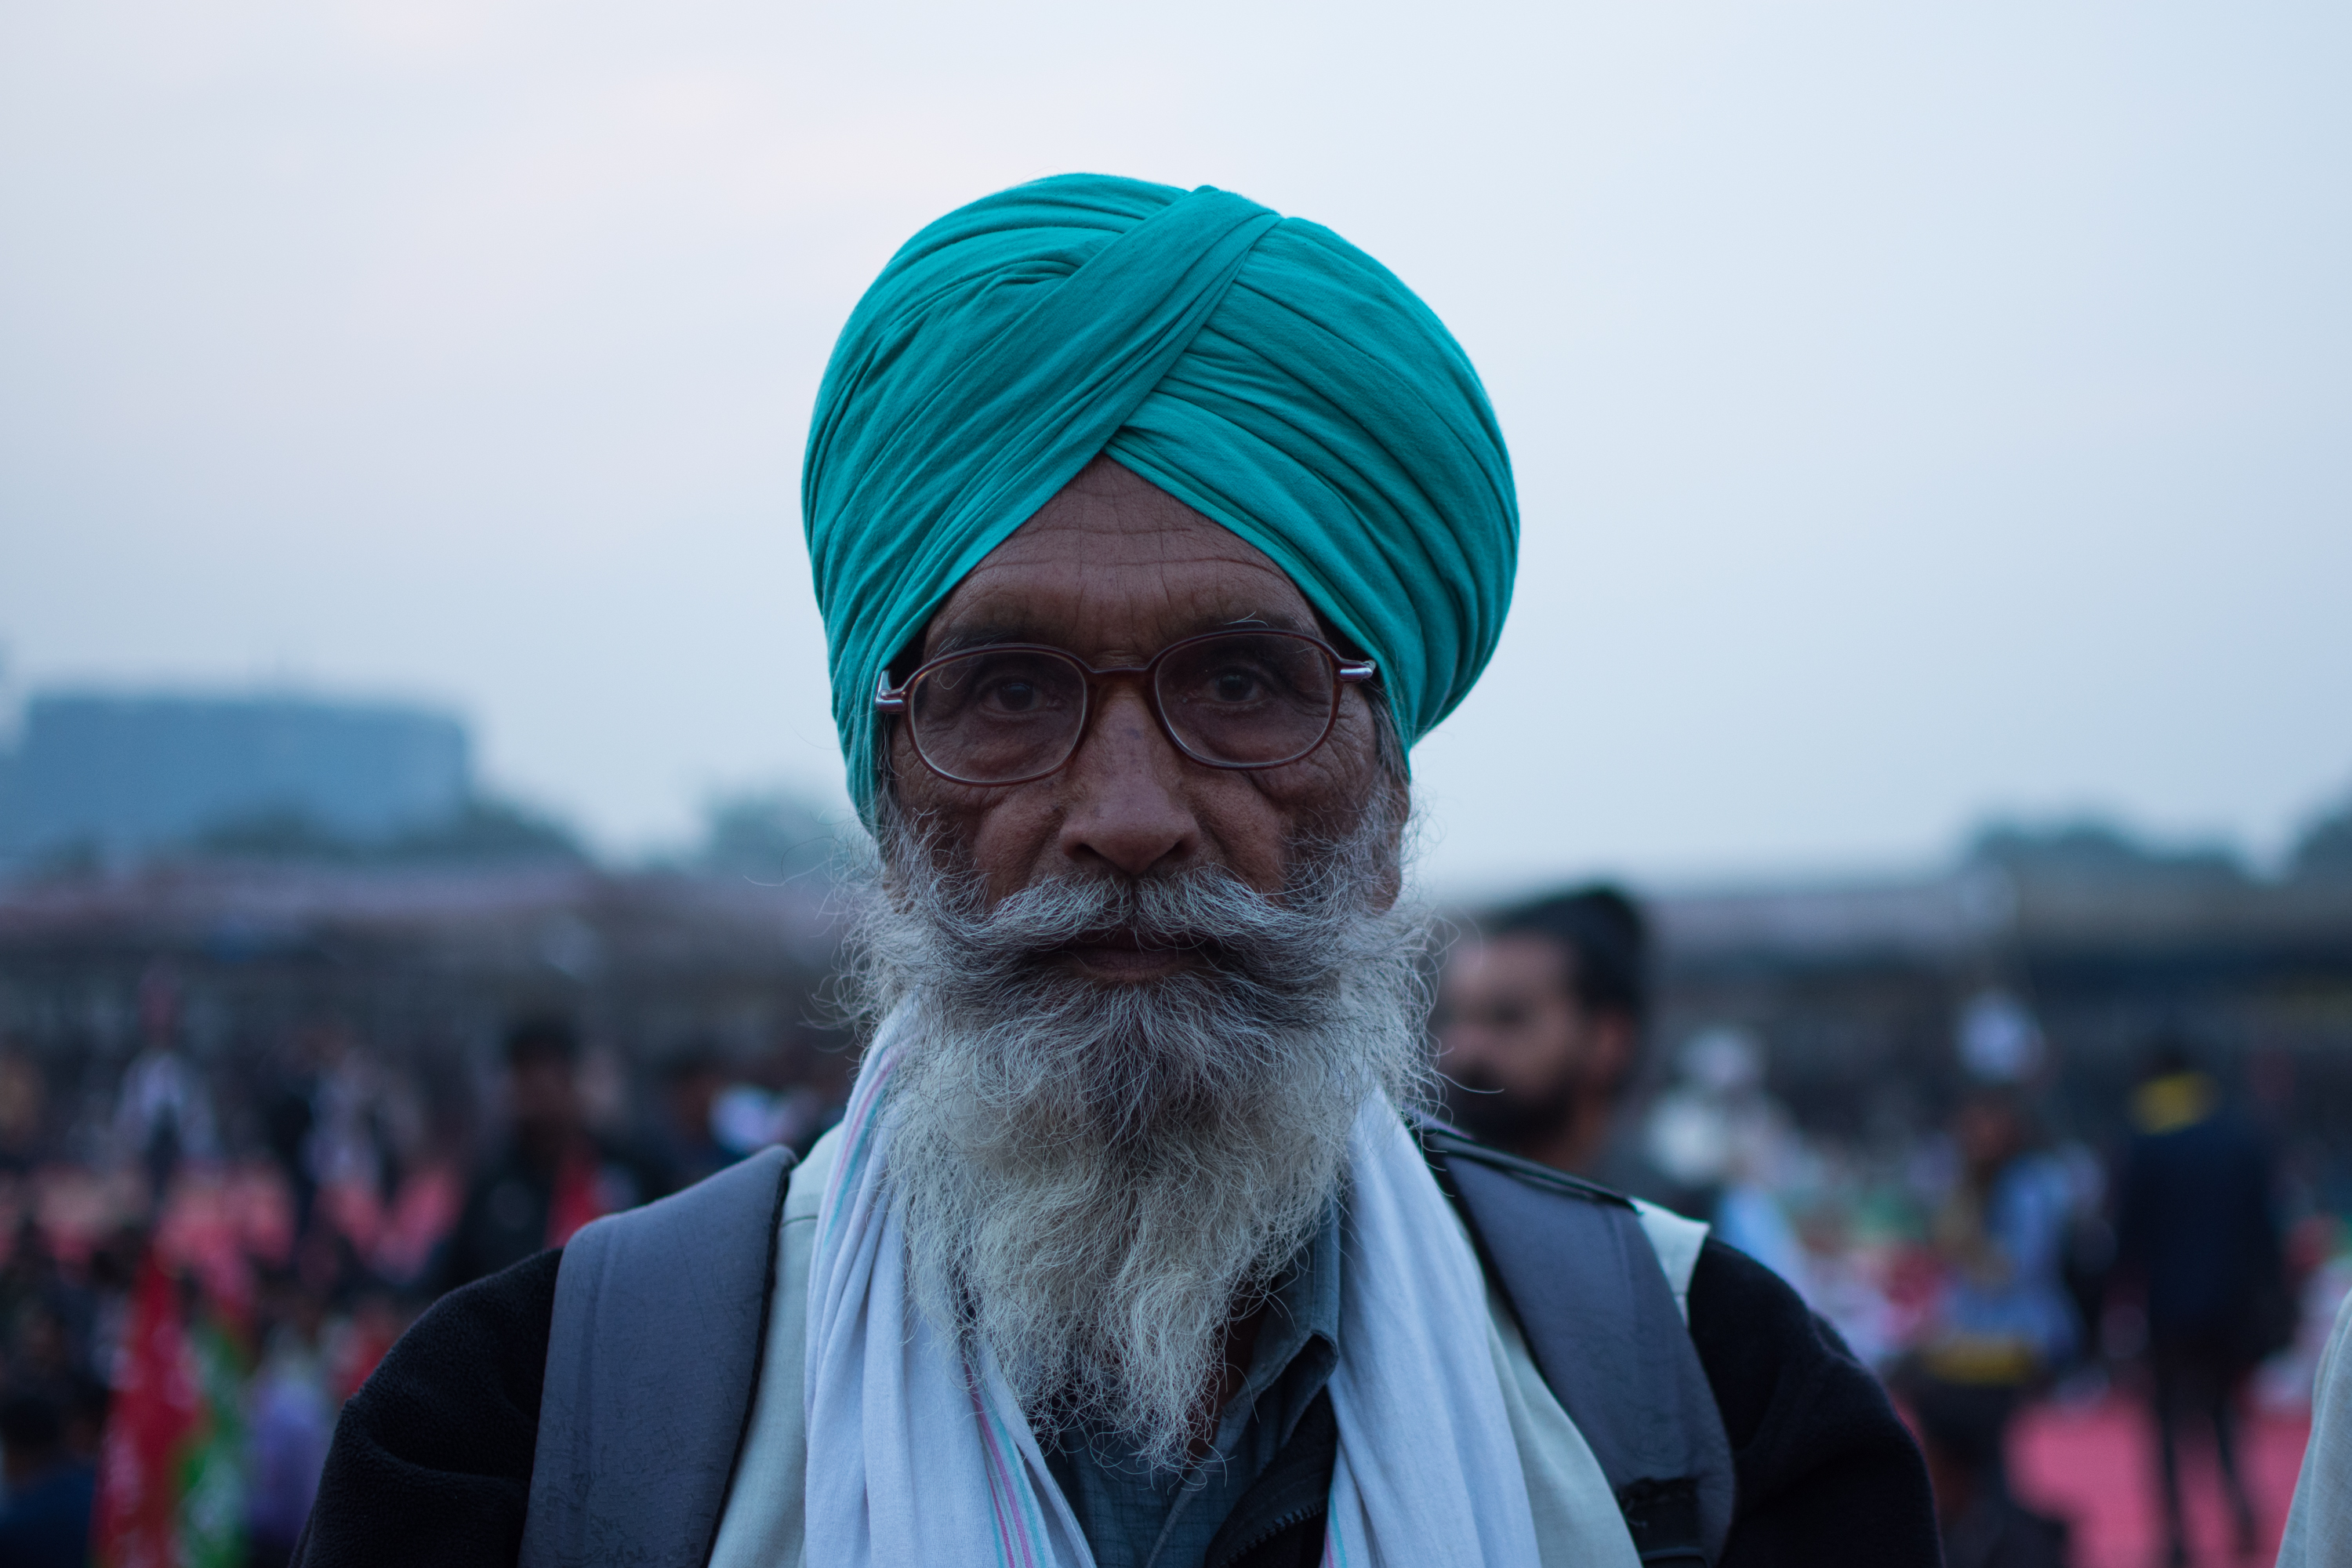 Baldev Singh, 70, among other farmers and rural labourers in New Delhi on Thursday.